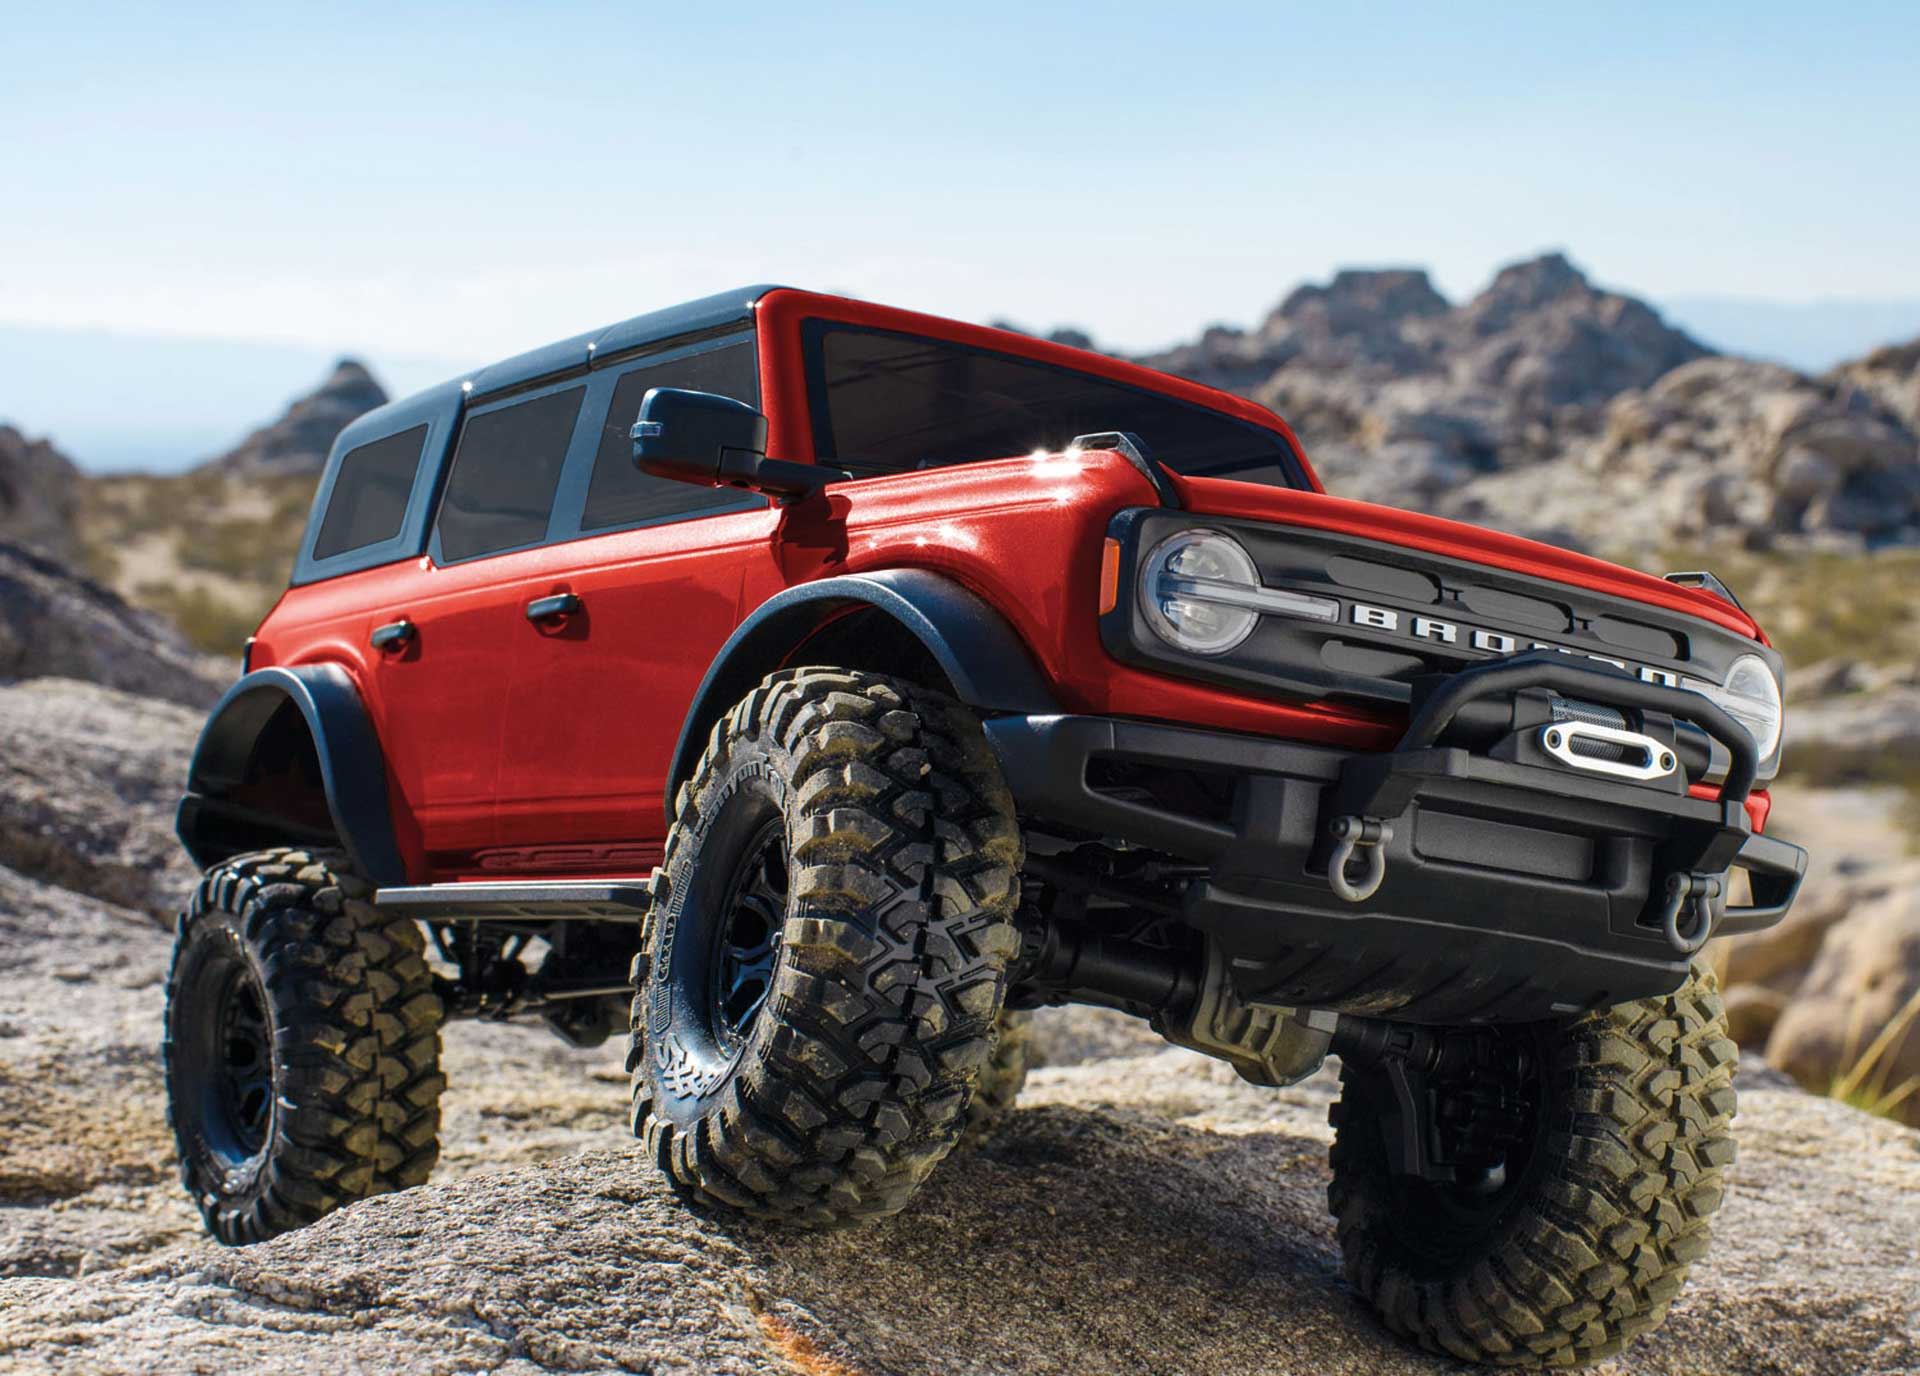 TRAXXAS TRX-4 2021 FORD BRONCO ROT RTR O. AKKU/LADER 1/10 4WD SCALE CRAWLER BRUSHED